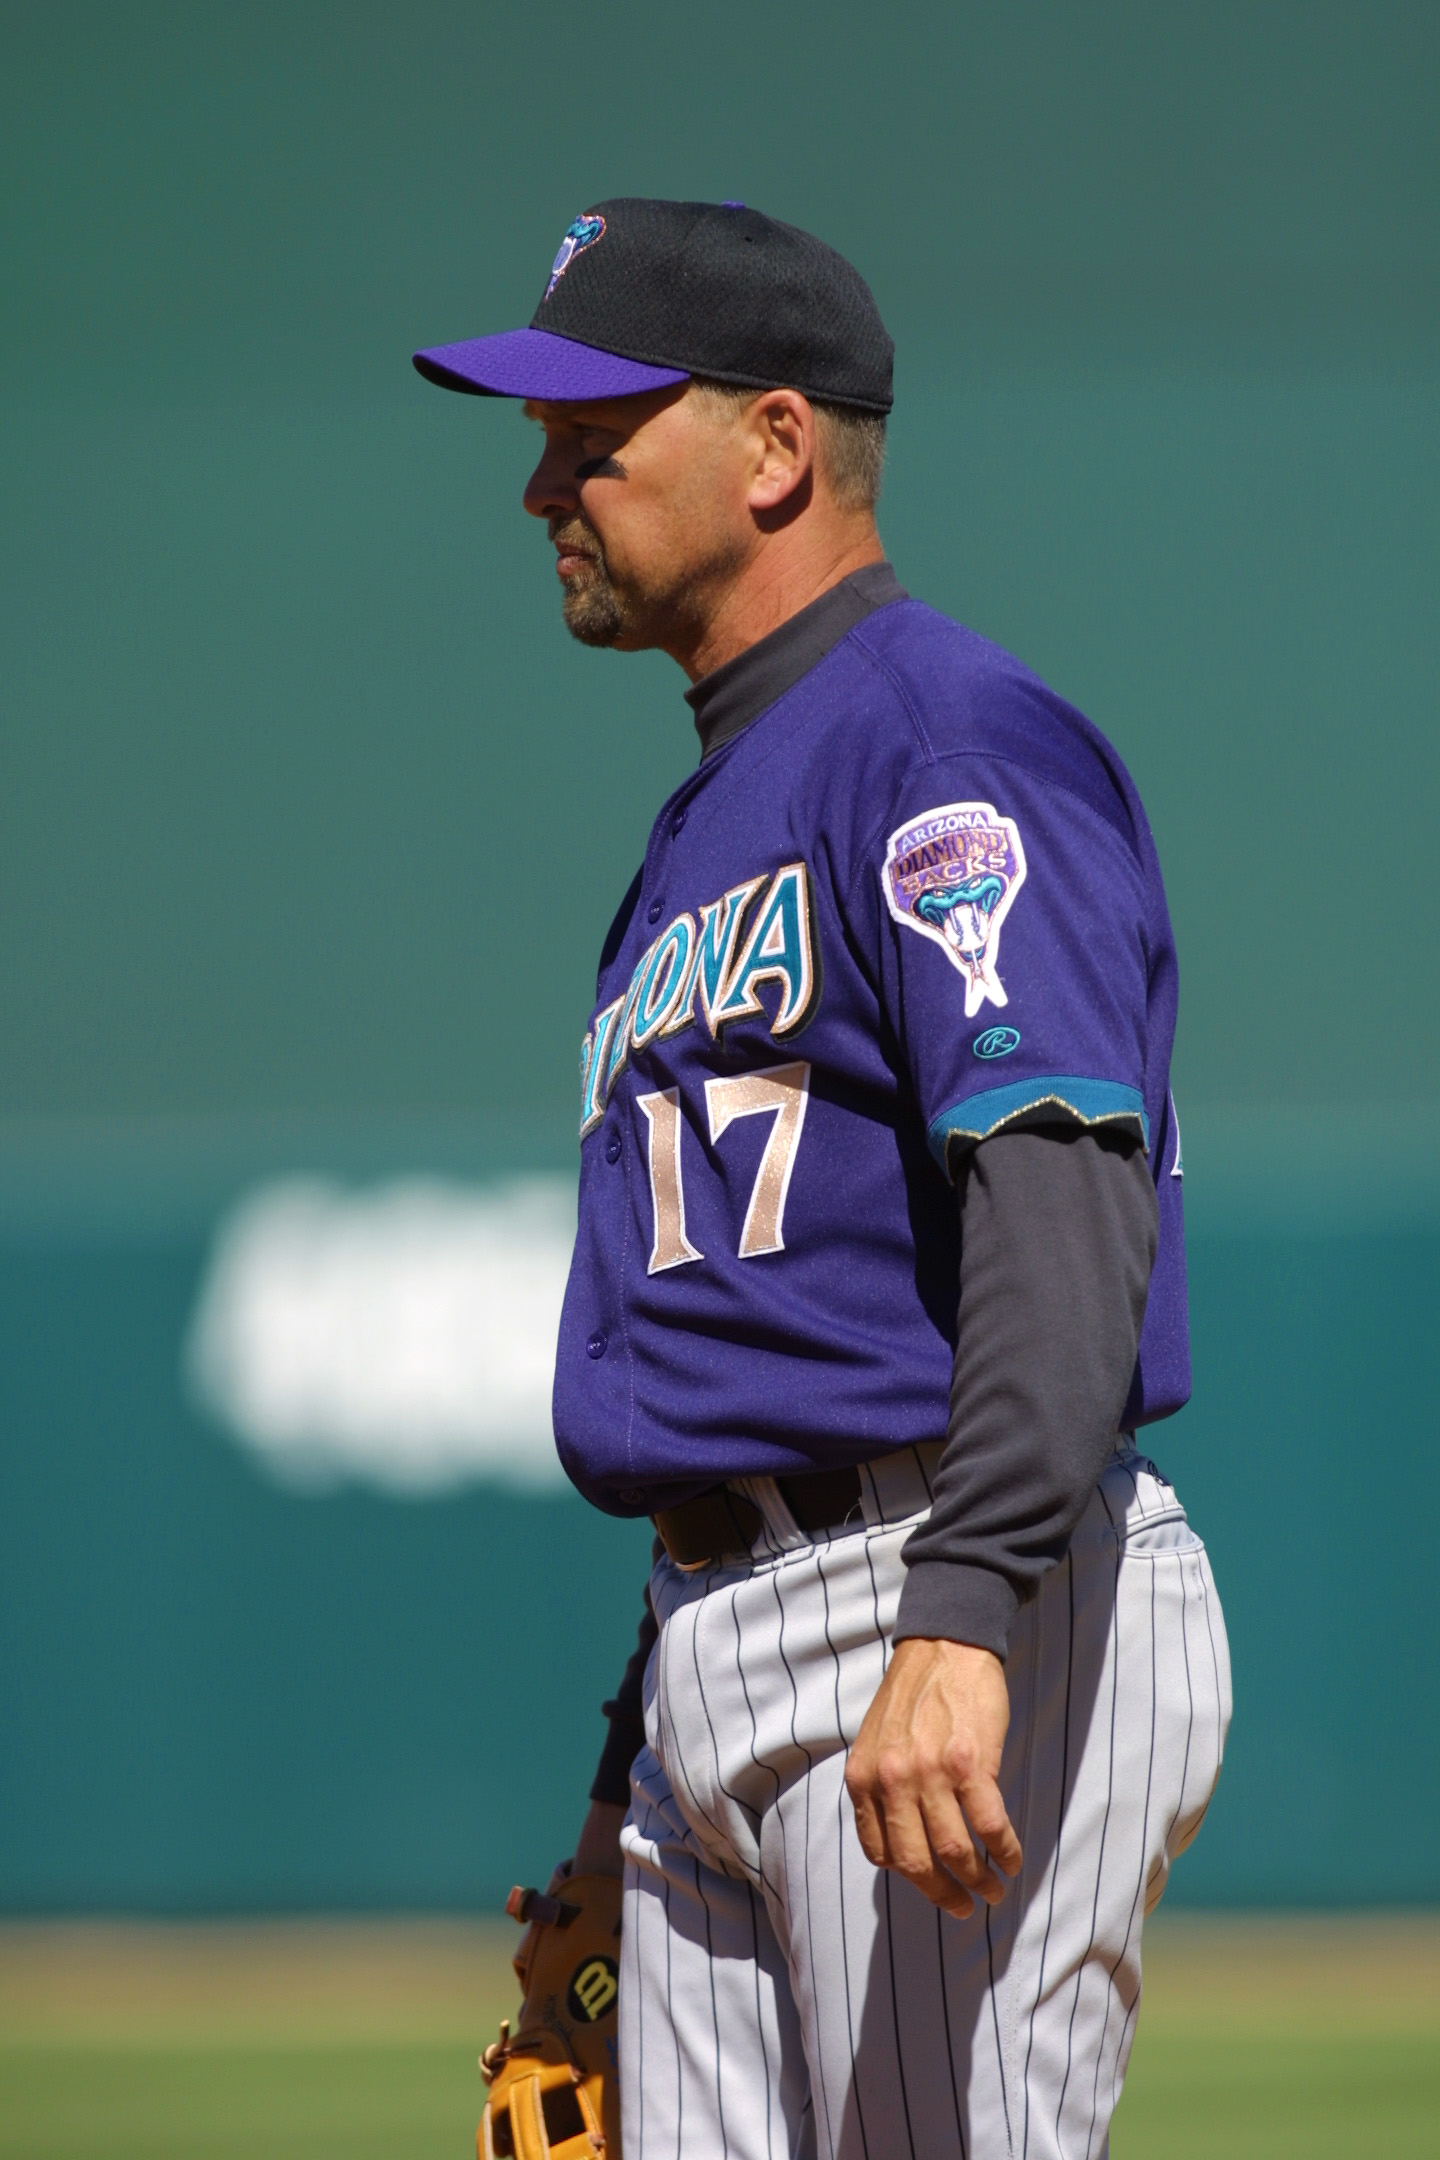 03 Mar 2002 : Mark Grace of the Arizona Diamondbacks during the Spring Training Game against the Chicago White Sox at Tucson Electric Field in Tucson, Arizona. The White Sox won 7-5. DIGITAL IMAGE. Mandatory Credit: Todd Warshaw/Getty Images